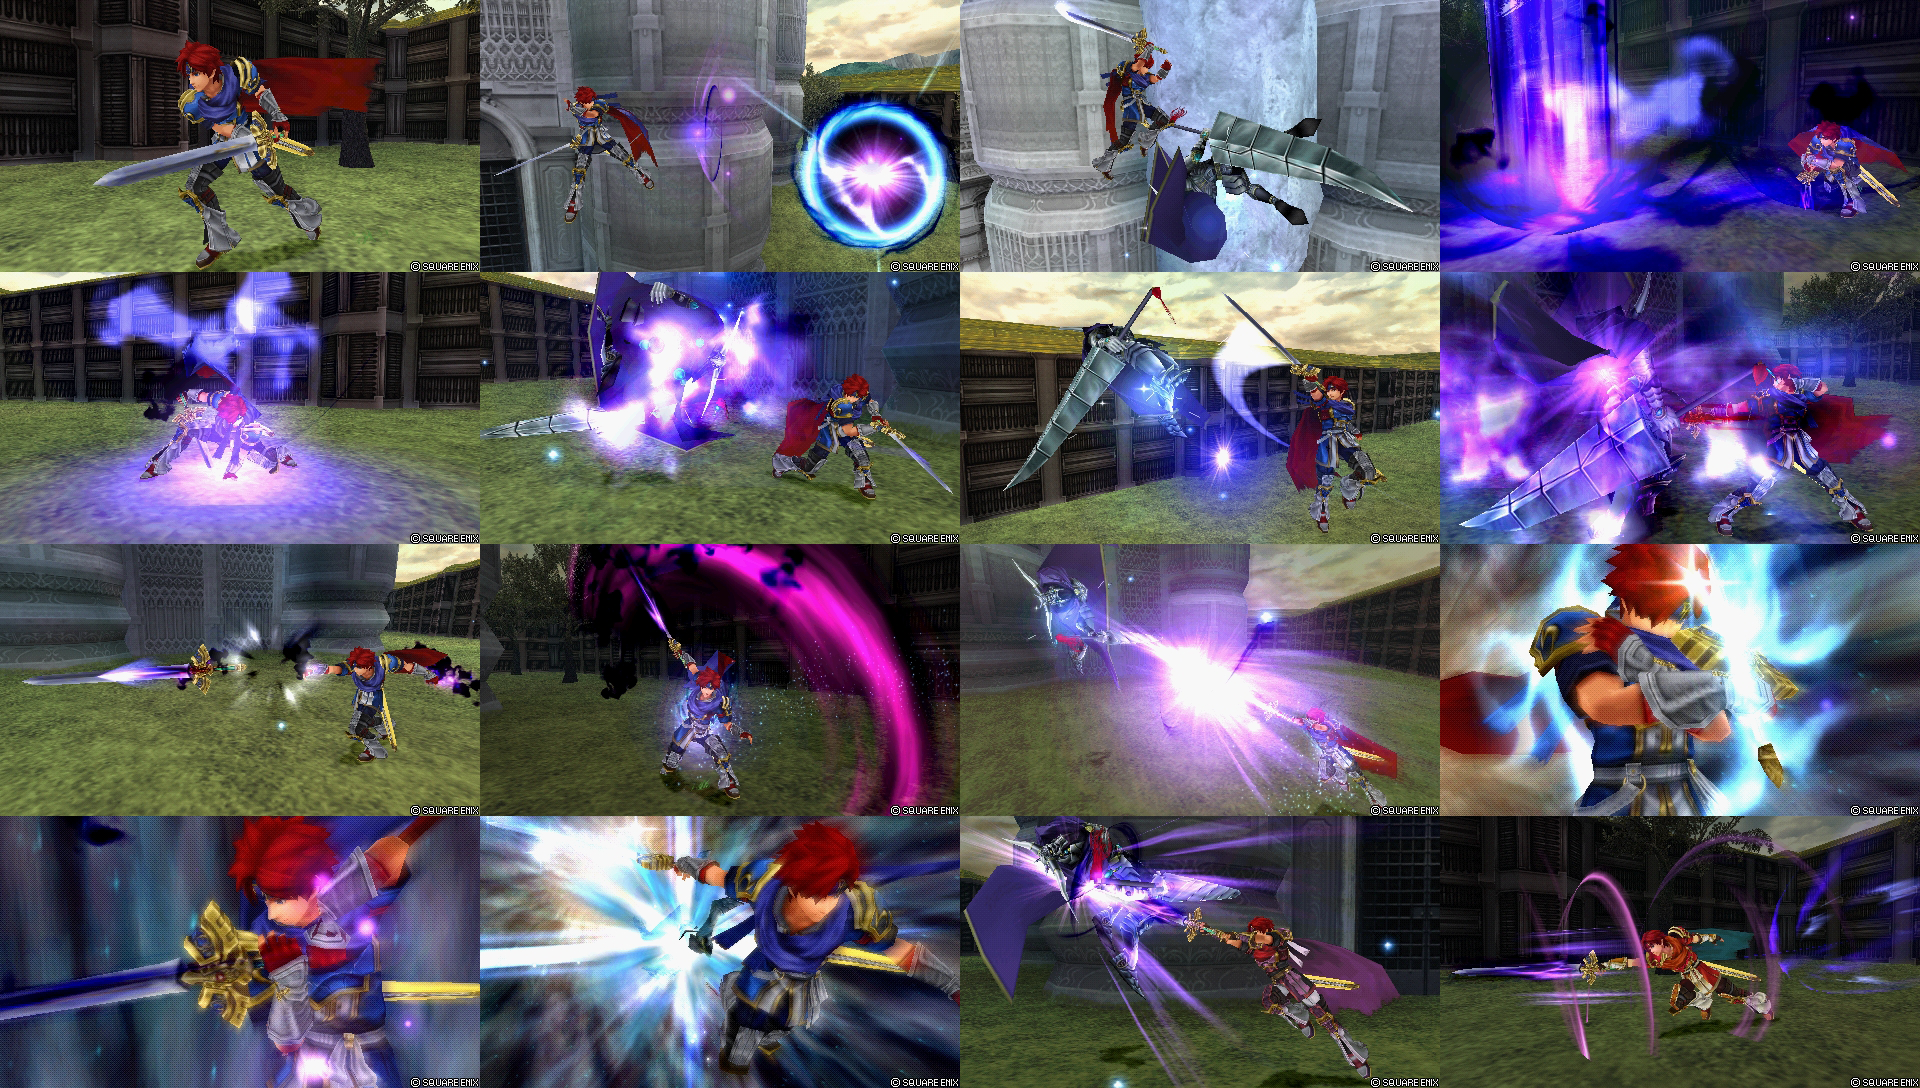 dissidia_012_mods__roy__smash_3ds__by_sa